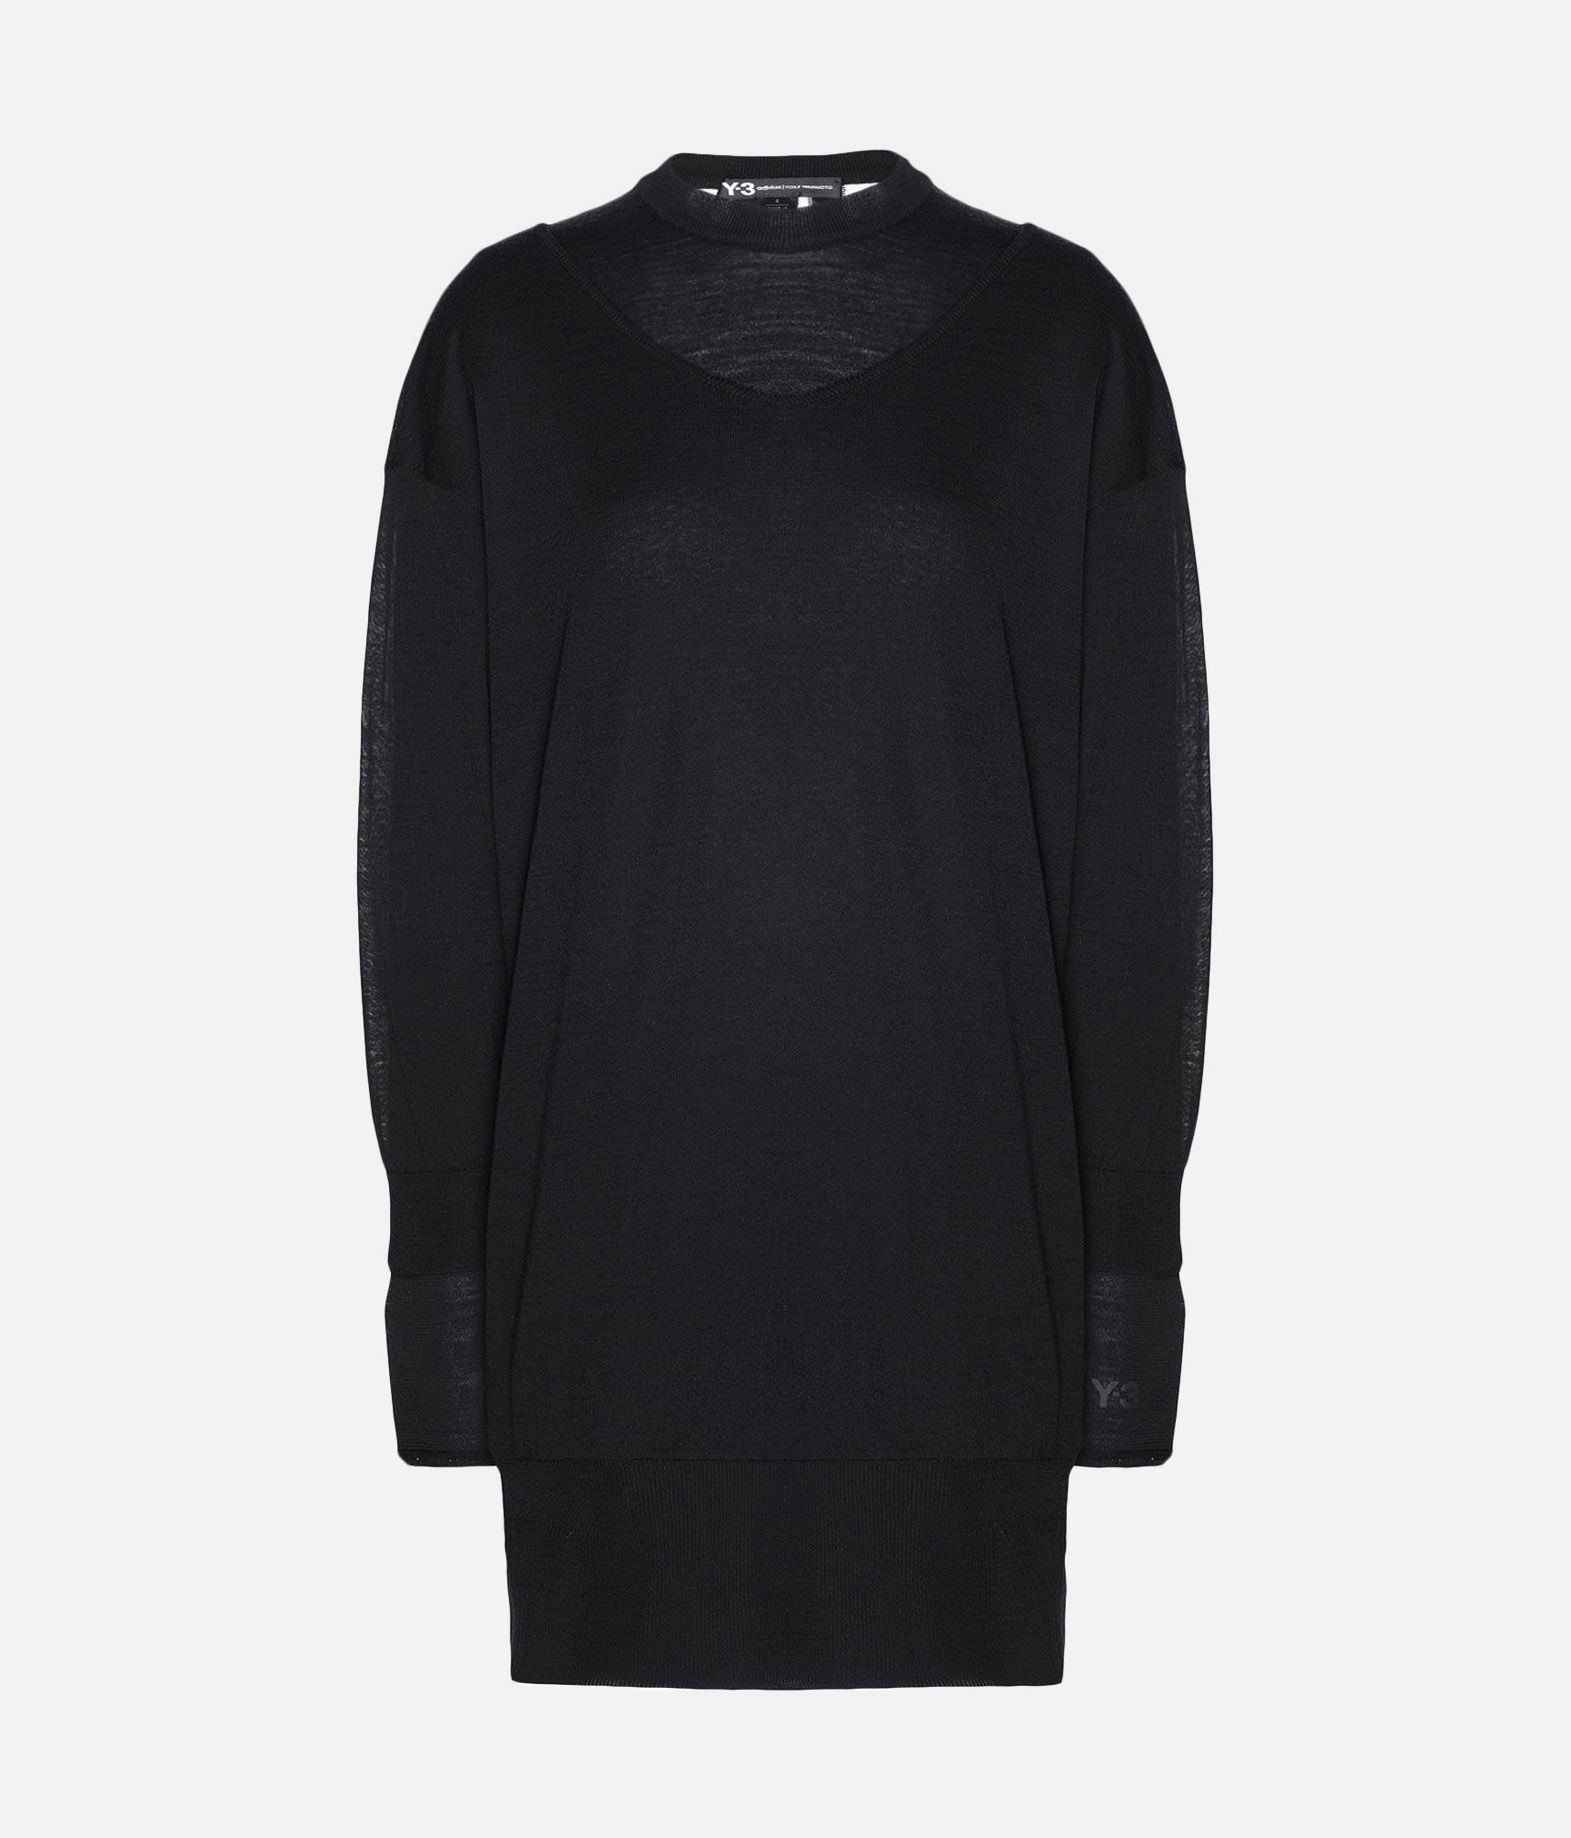 Y-3 Y-3 Layered Knitted Long Sweater Long sleeve jumper Woman f